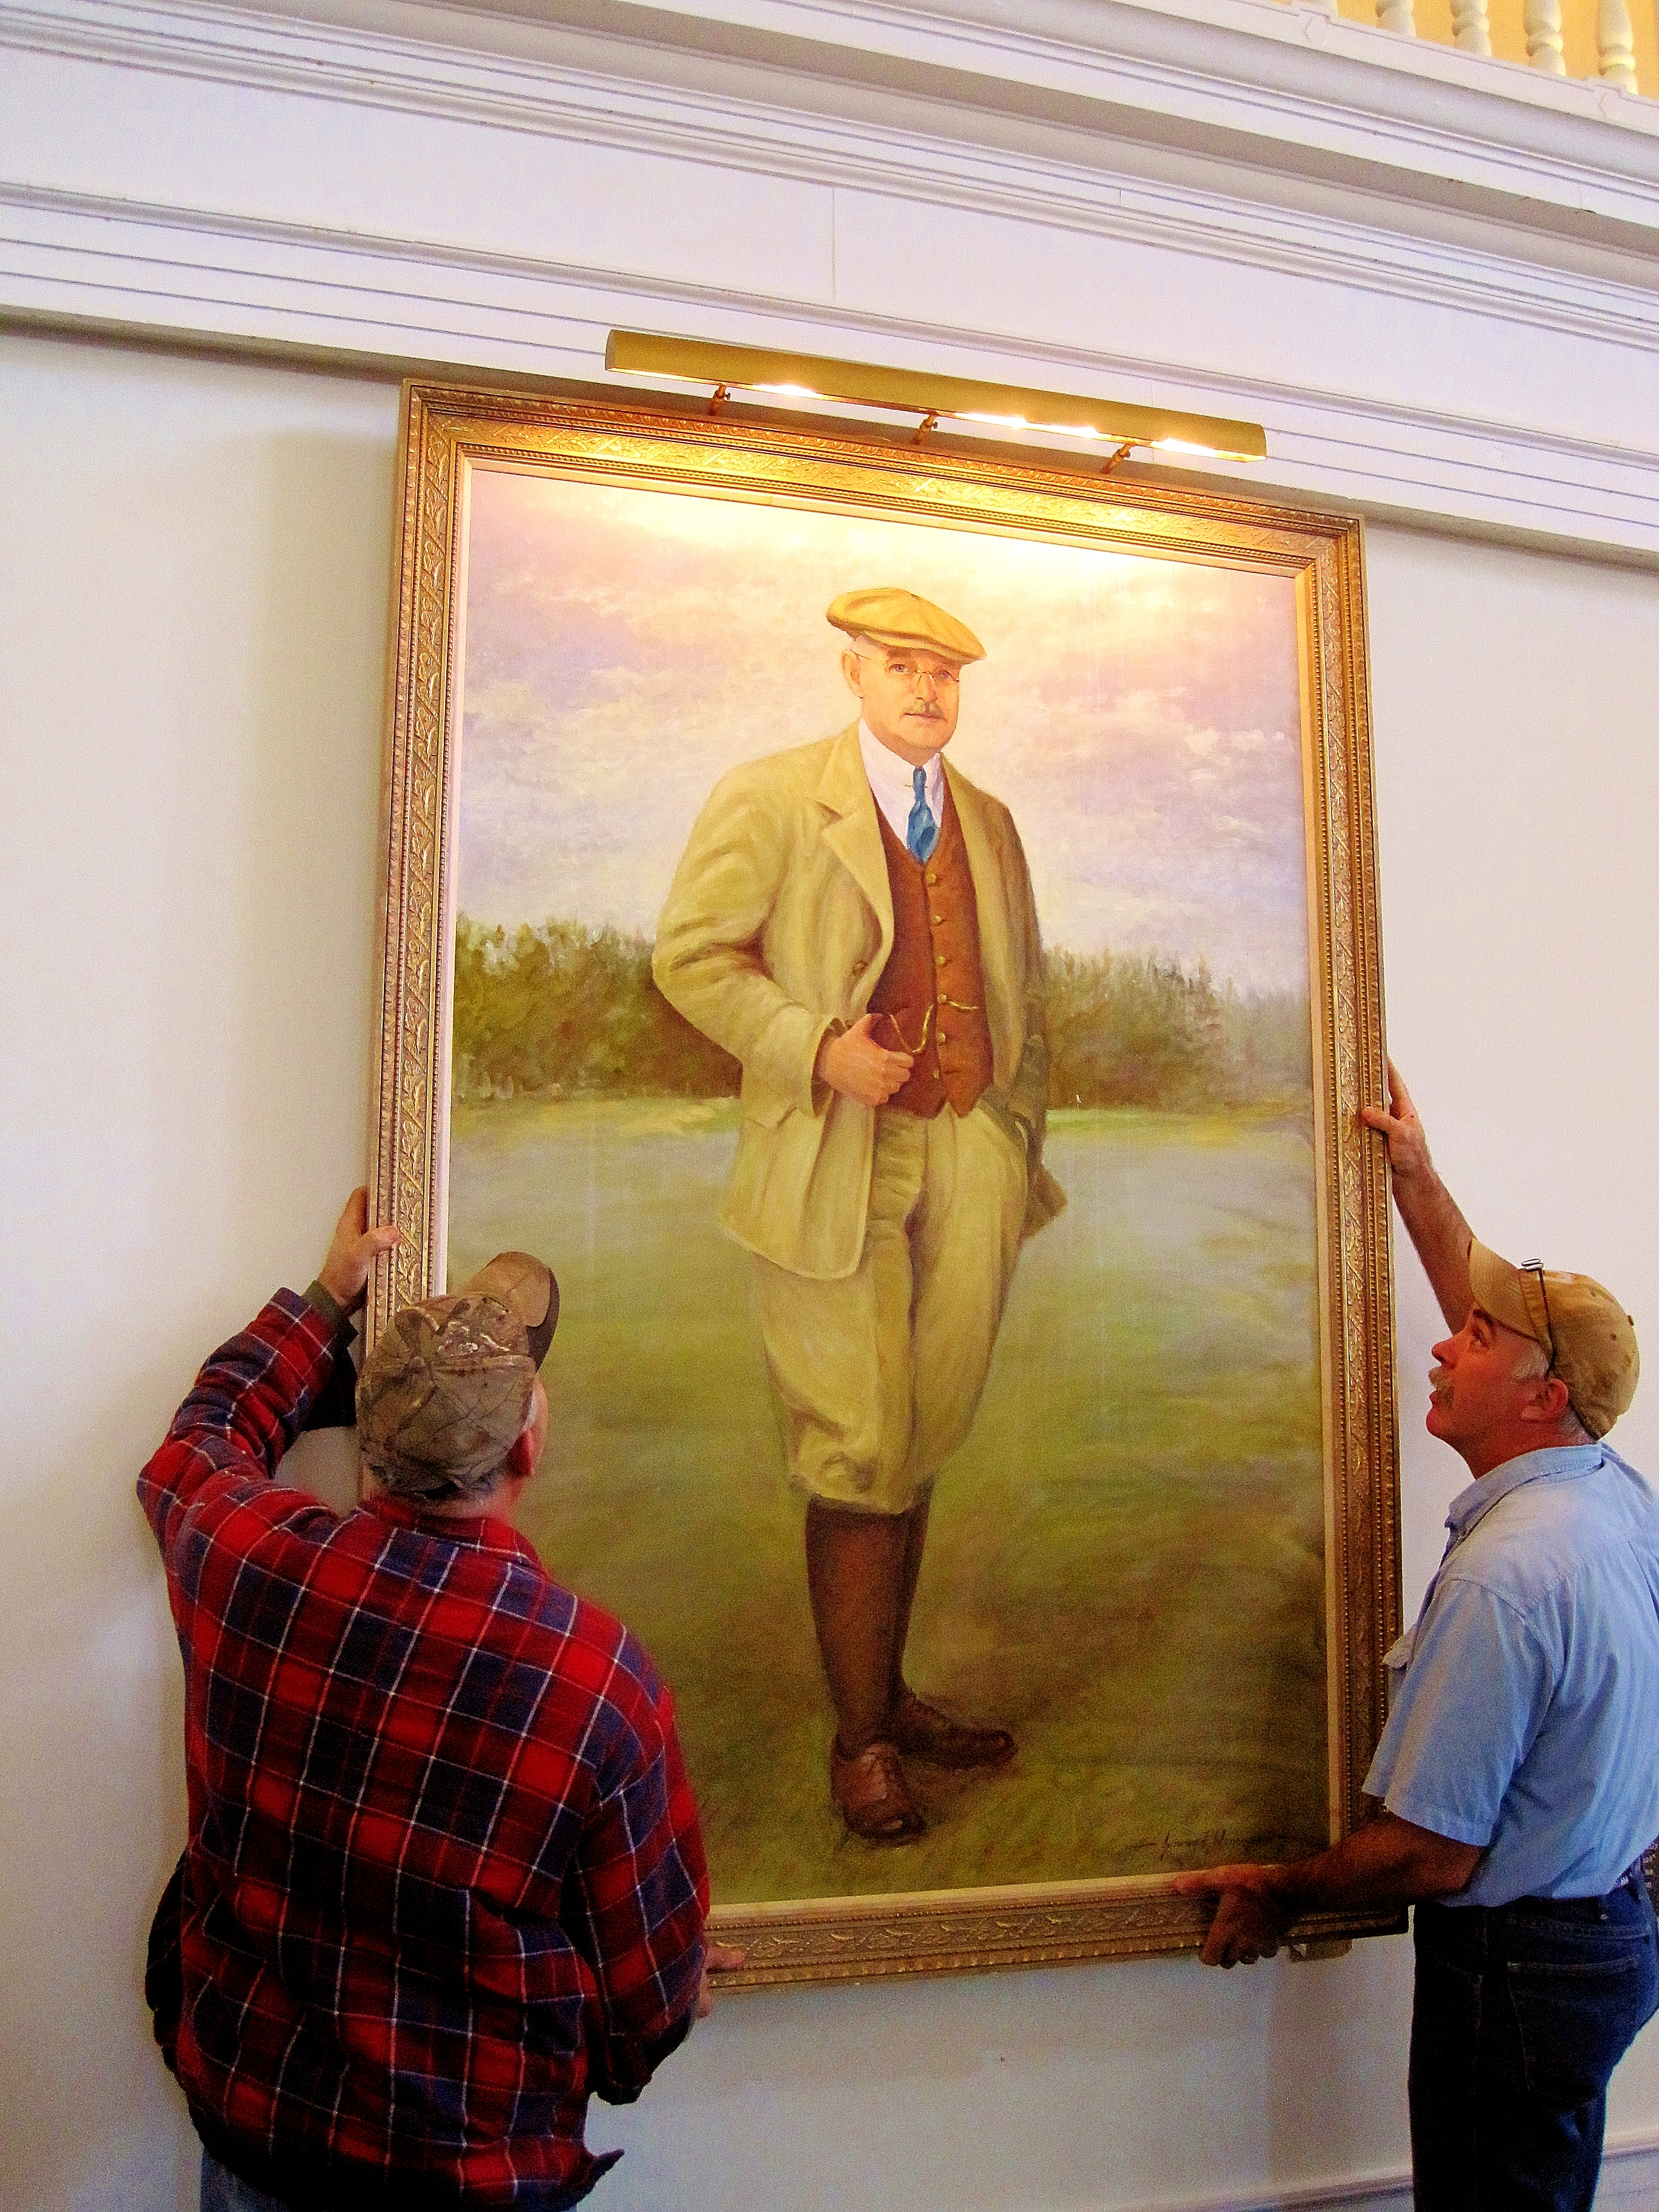 The Donald Ross portrait that adorns the wall of the Pinehurst restaurant that bears his name is removed for restoration.